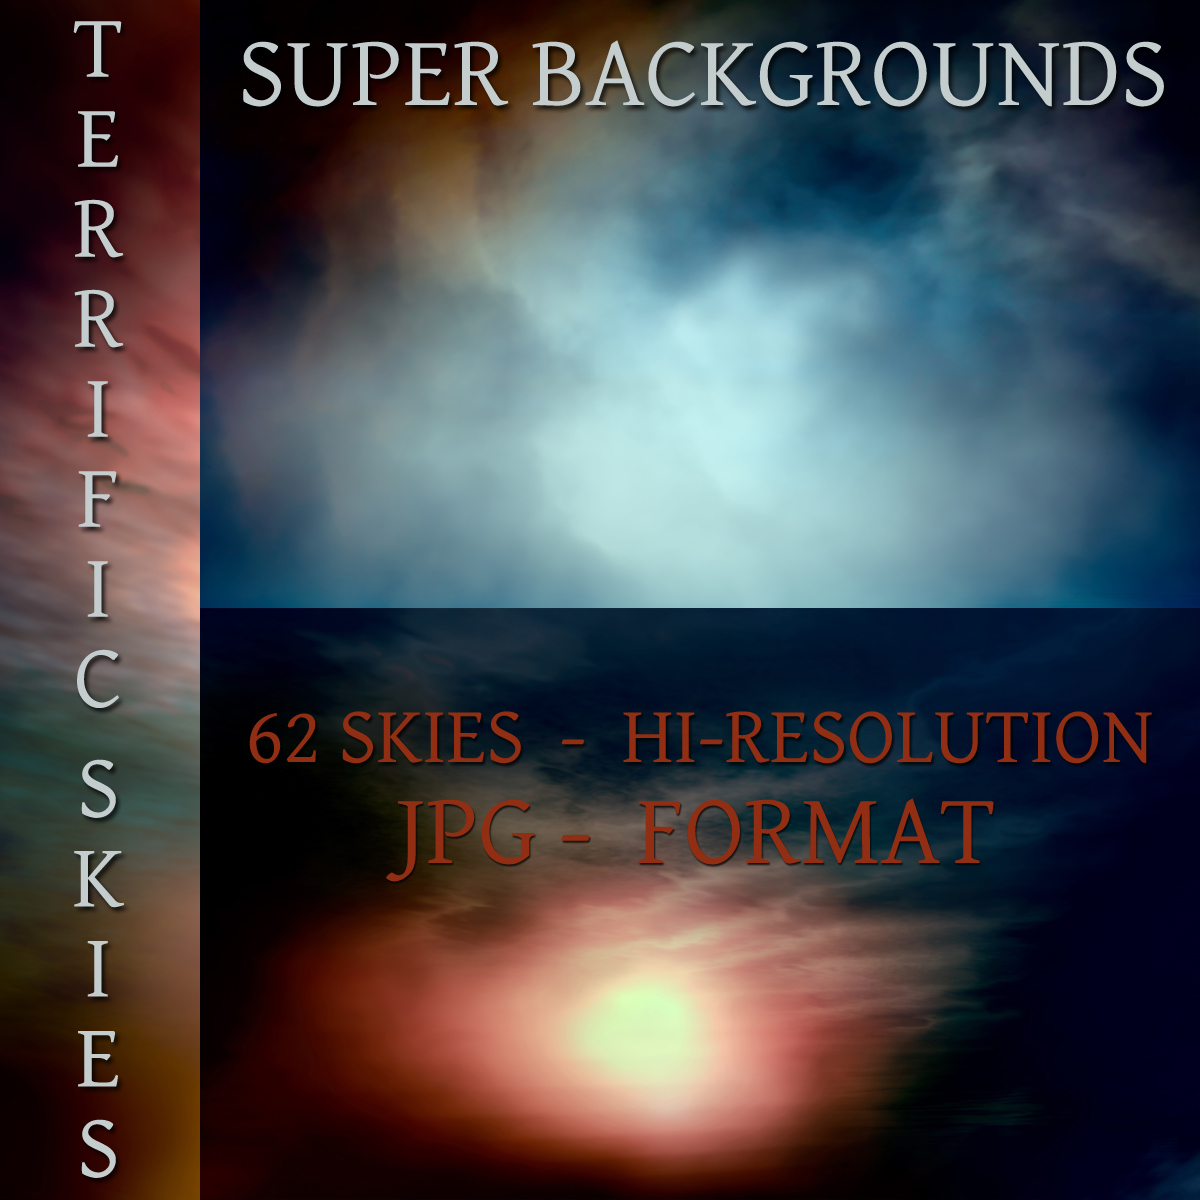 Super Backgrounds - Terrific Skies